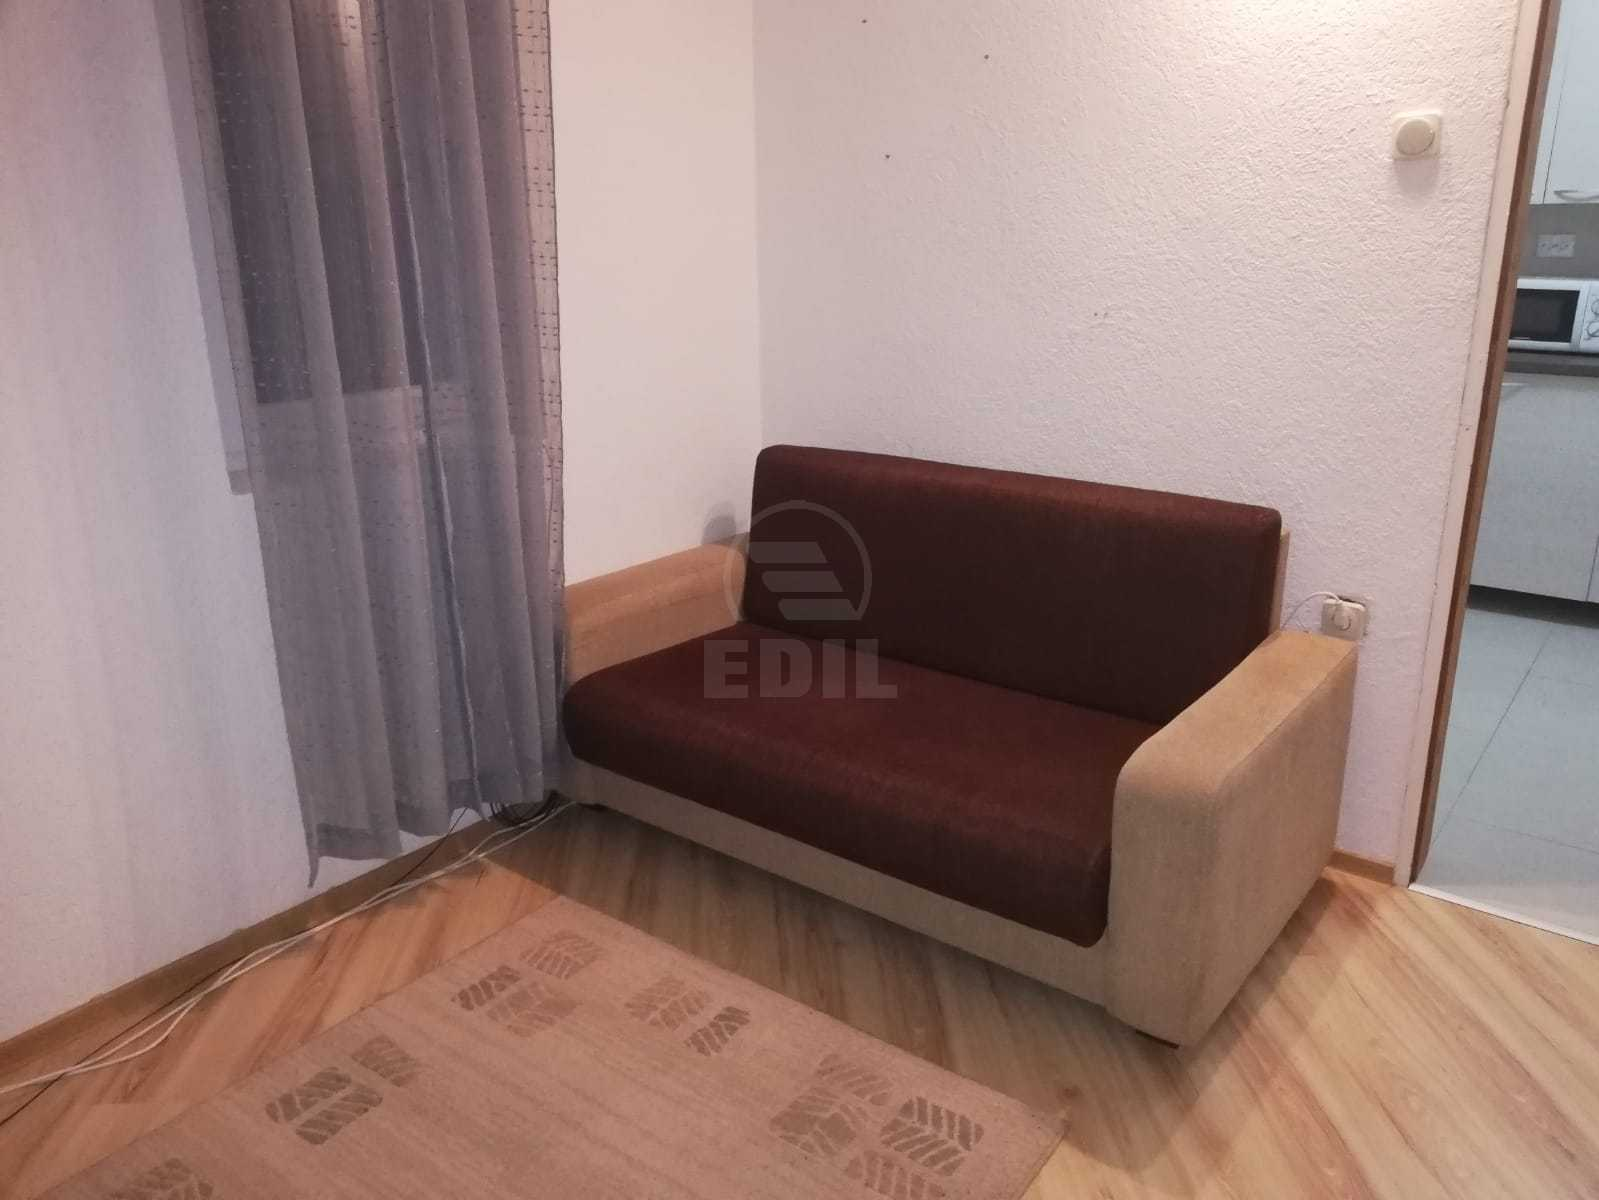 Apartment for rent 3 rooms, APCJ305940-4